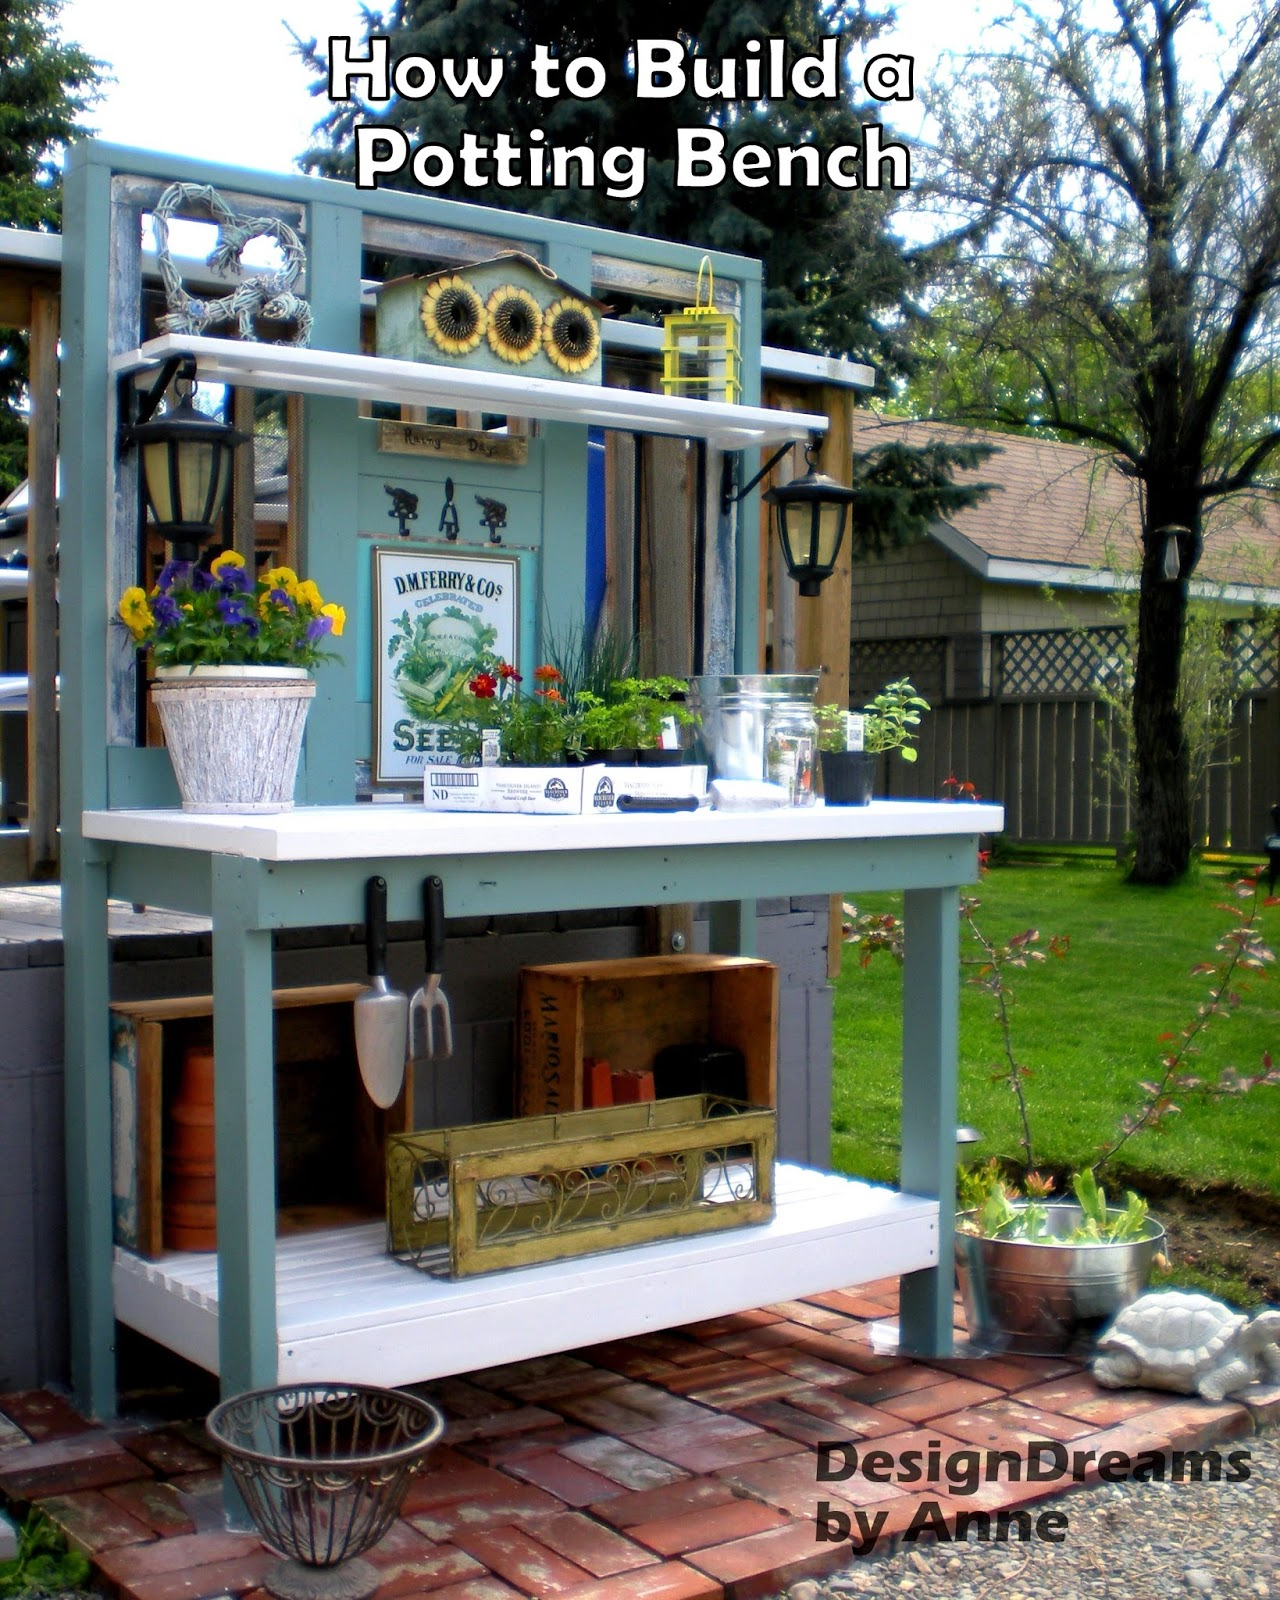 Pdf Diy How To Make A Potting Bench Download How To Build Gun Cabinets Free Plans Woodguides